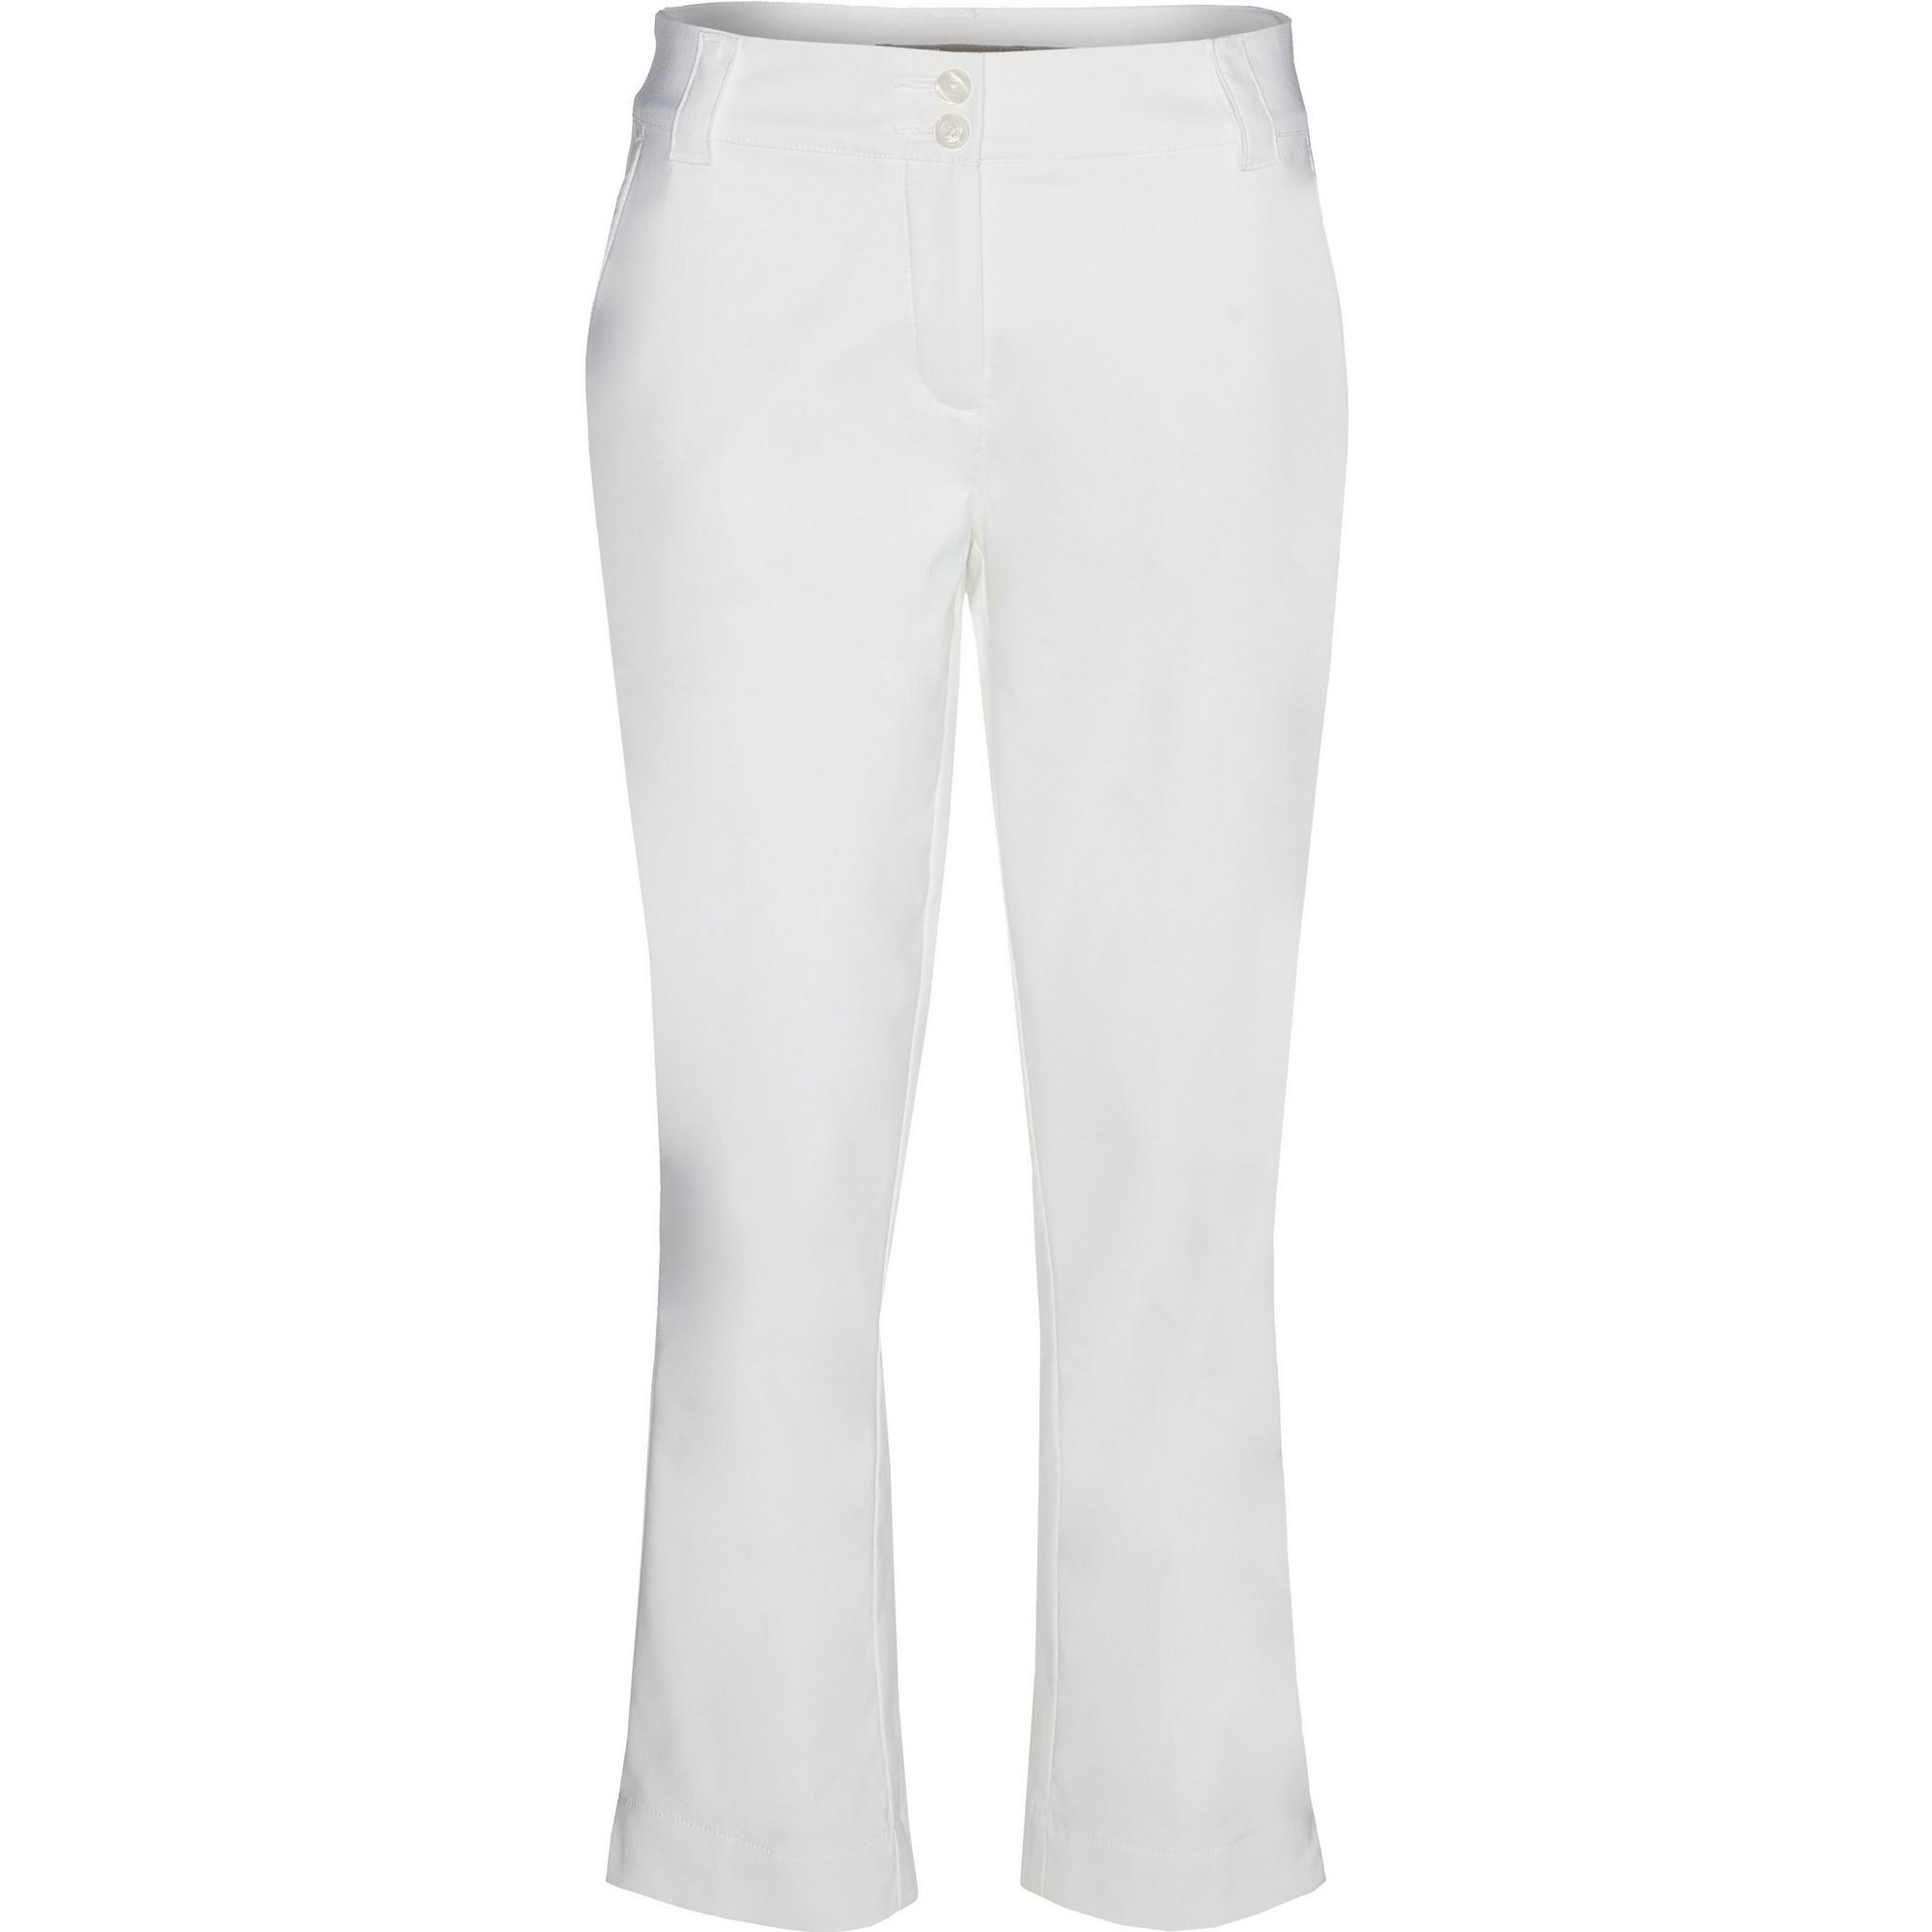 Women's High Side Pant